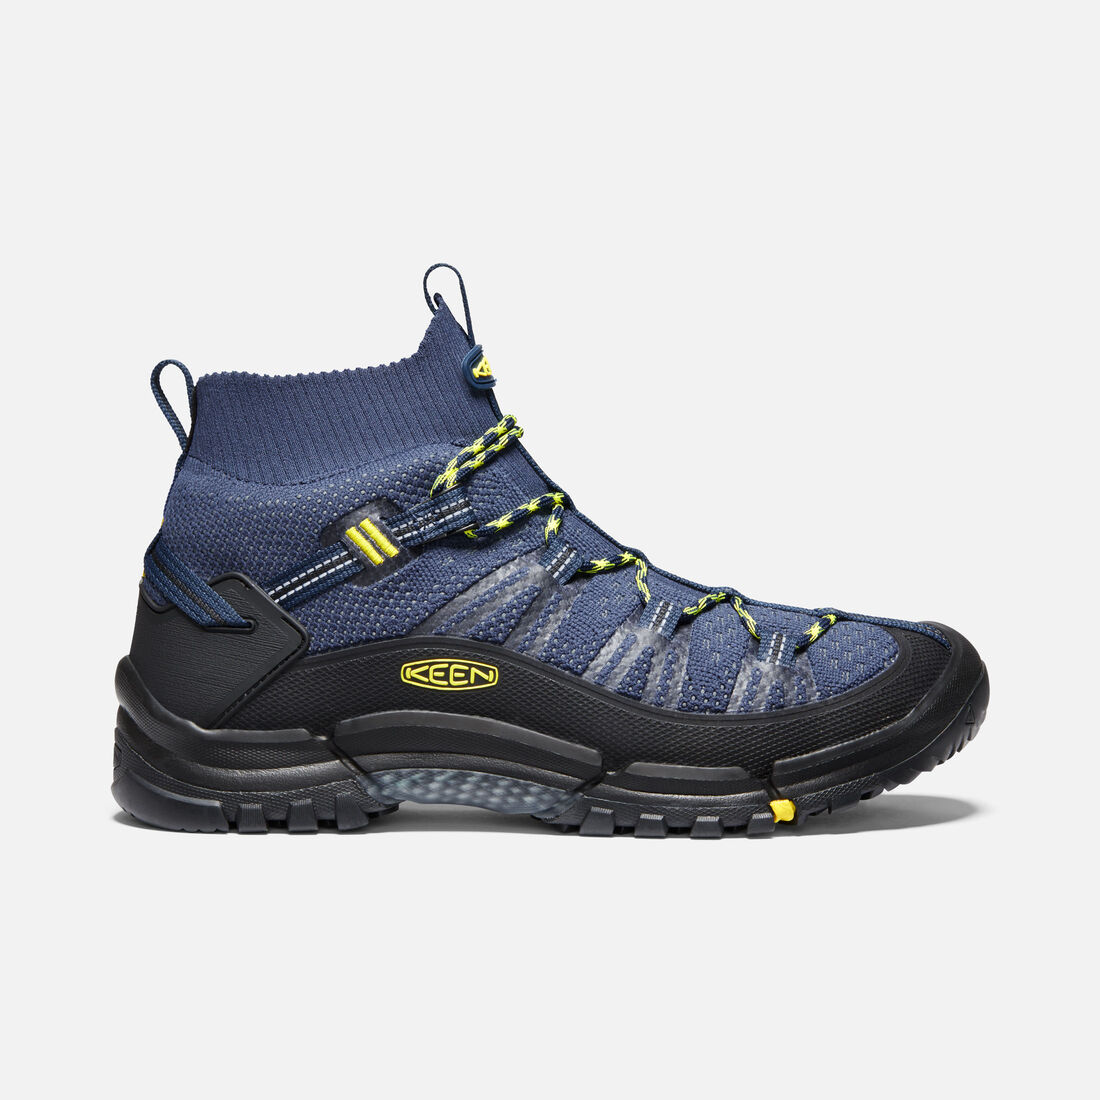 Men's AXIS EVO Mid in DRESS BLUE/BLAZING YELLOW - large view.